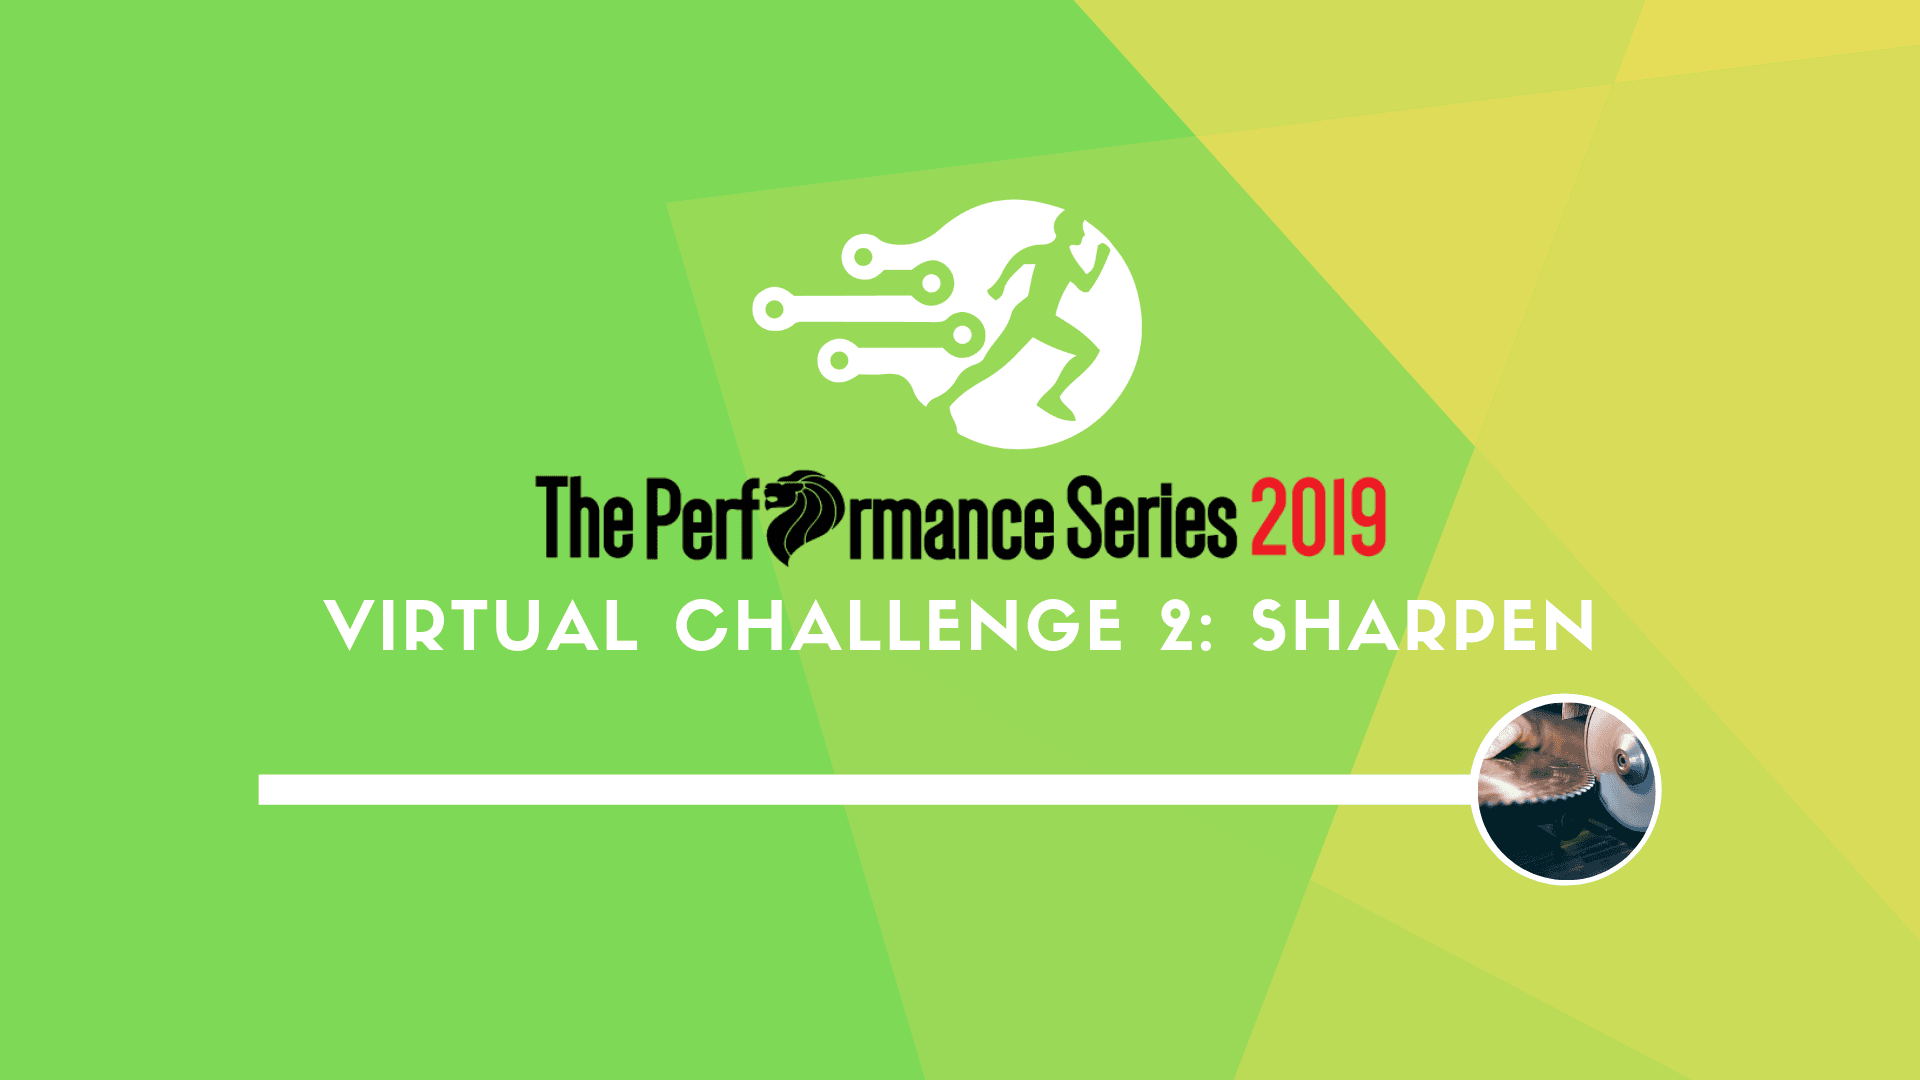 Logo of The Performance Series 2019 Virtual Challenge 2: Begin